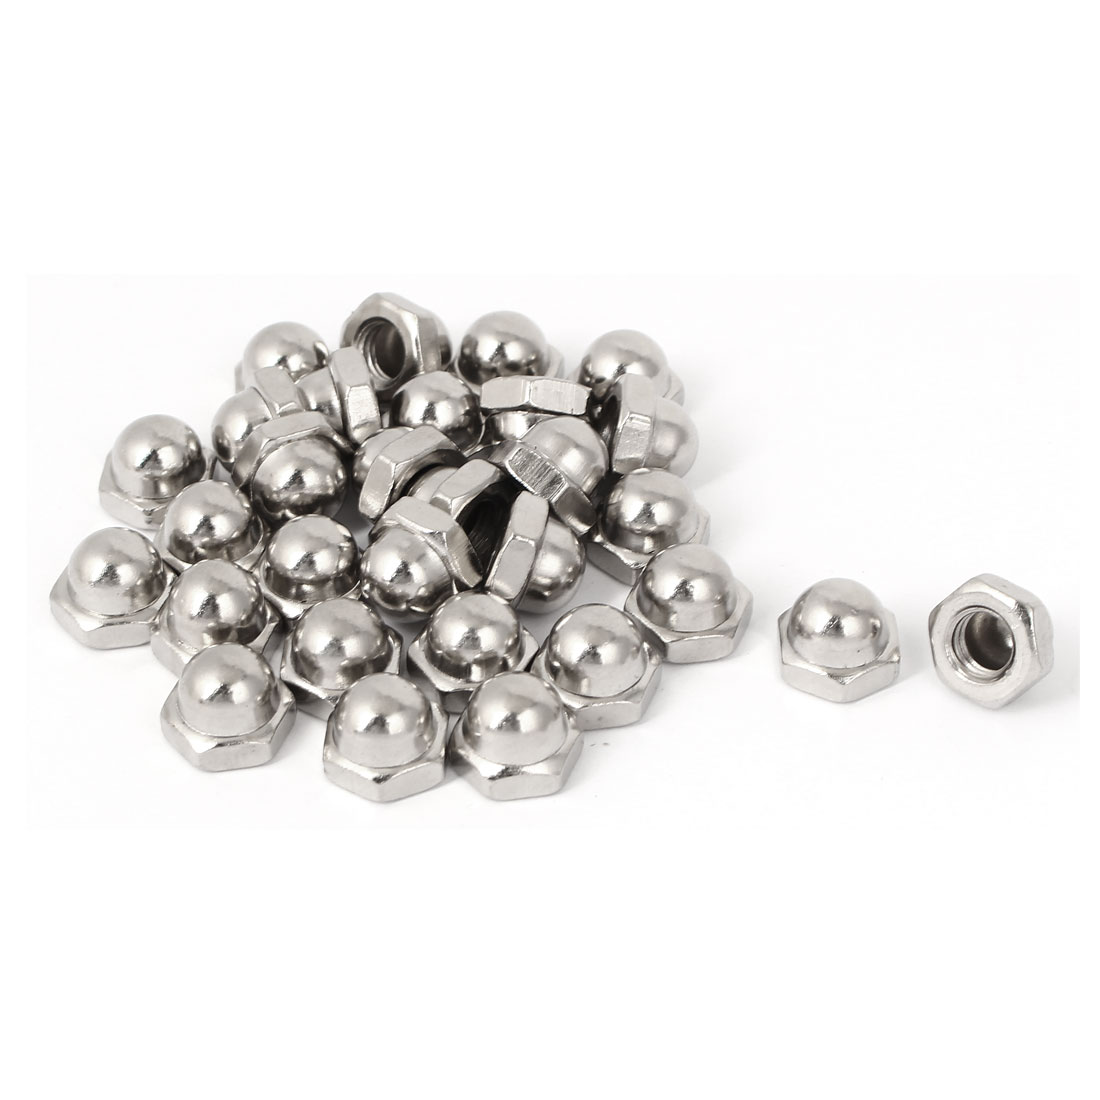 M8 x 1.25mm Pitch Carbon Steel Dome Head Hexagon Caps Cover Nuts DIN1587 30PCS